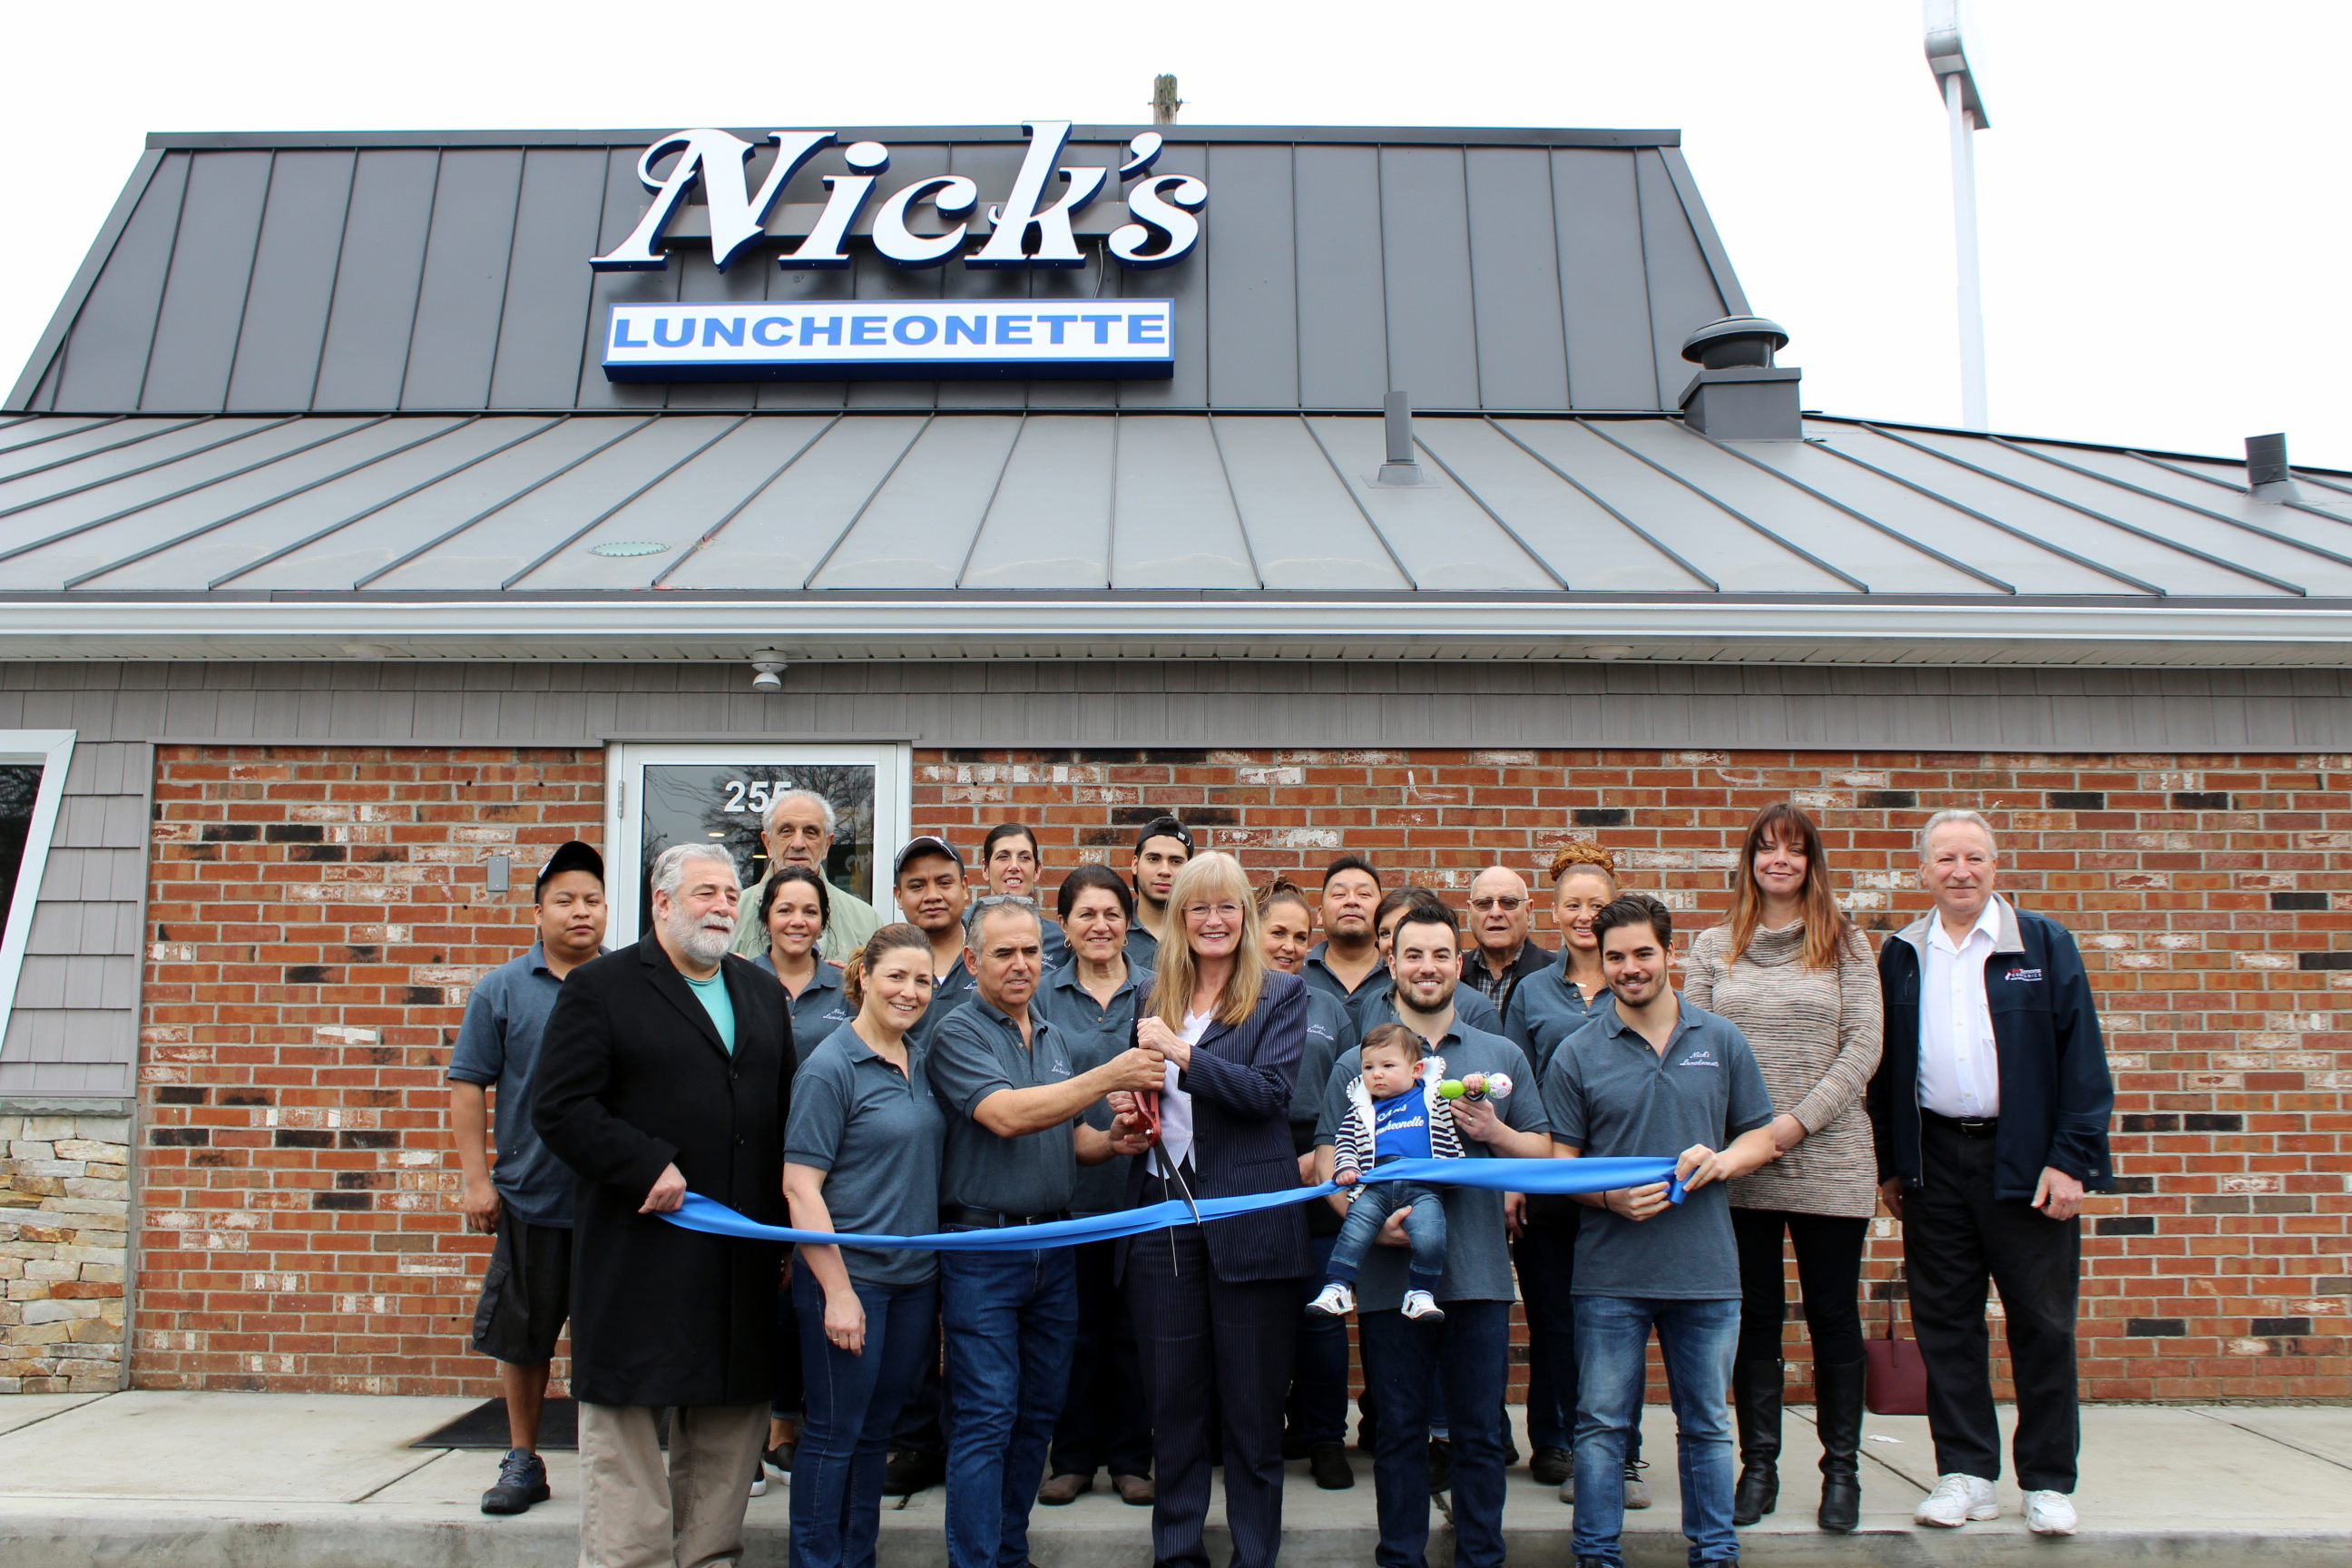 Nick's Luncheonette relocates